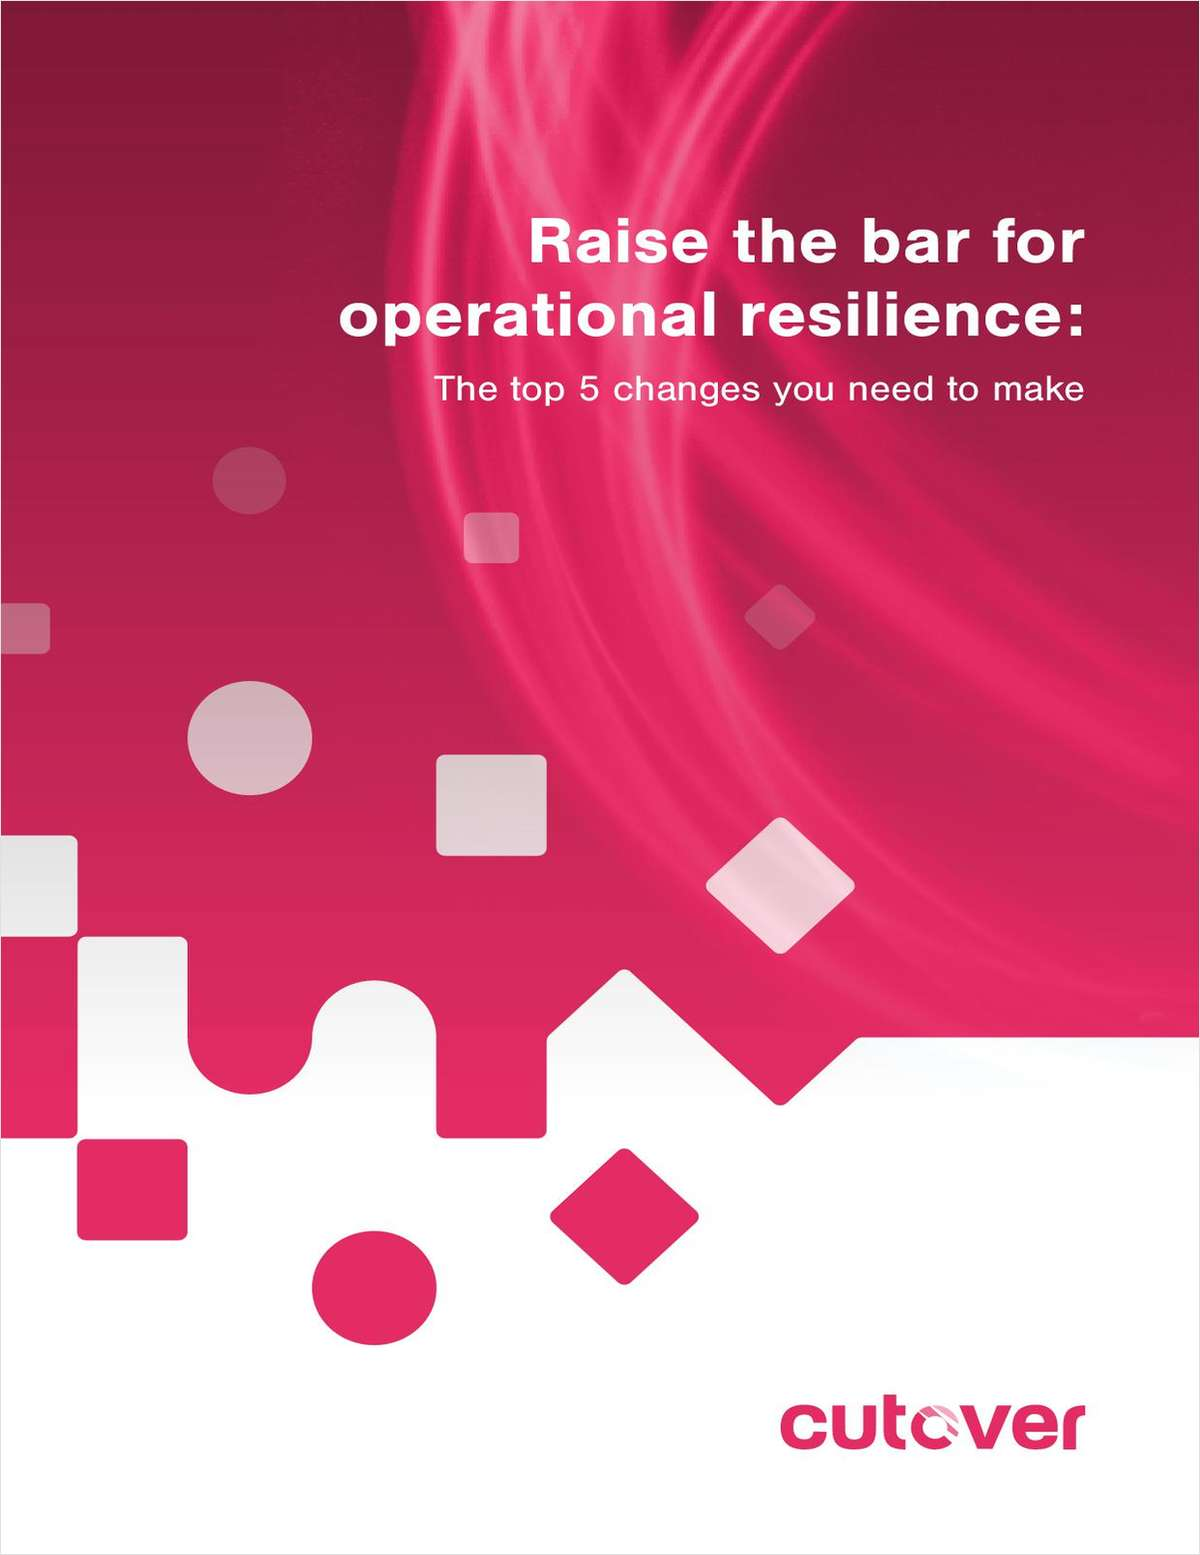 Raise the bar for operational resilience: The top 5 changes you need to make